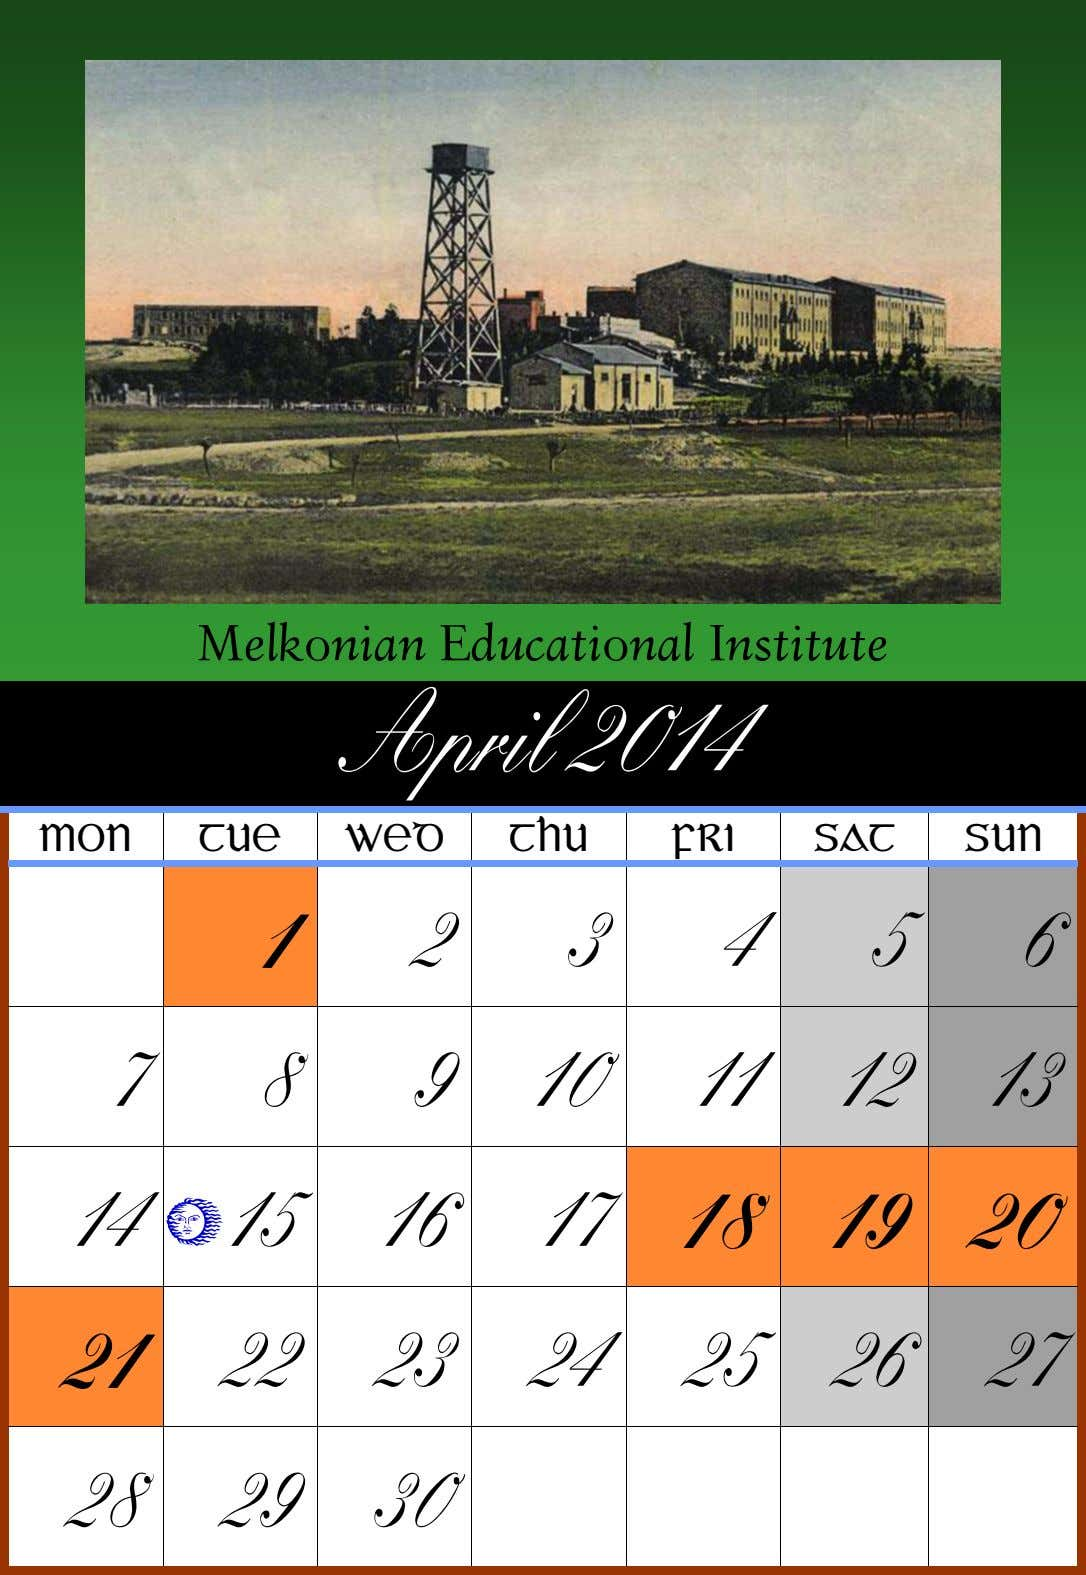 Melkonian Educational Institute April 2014 MON TUE WED THU FRI SAT SUN 1 2 3